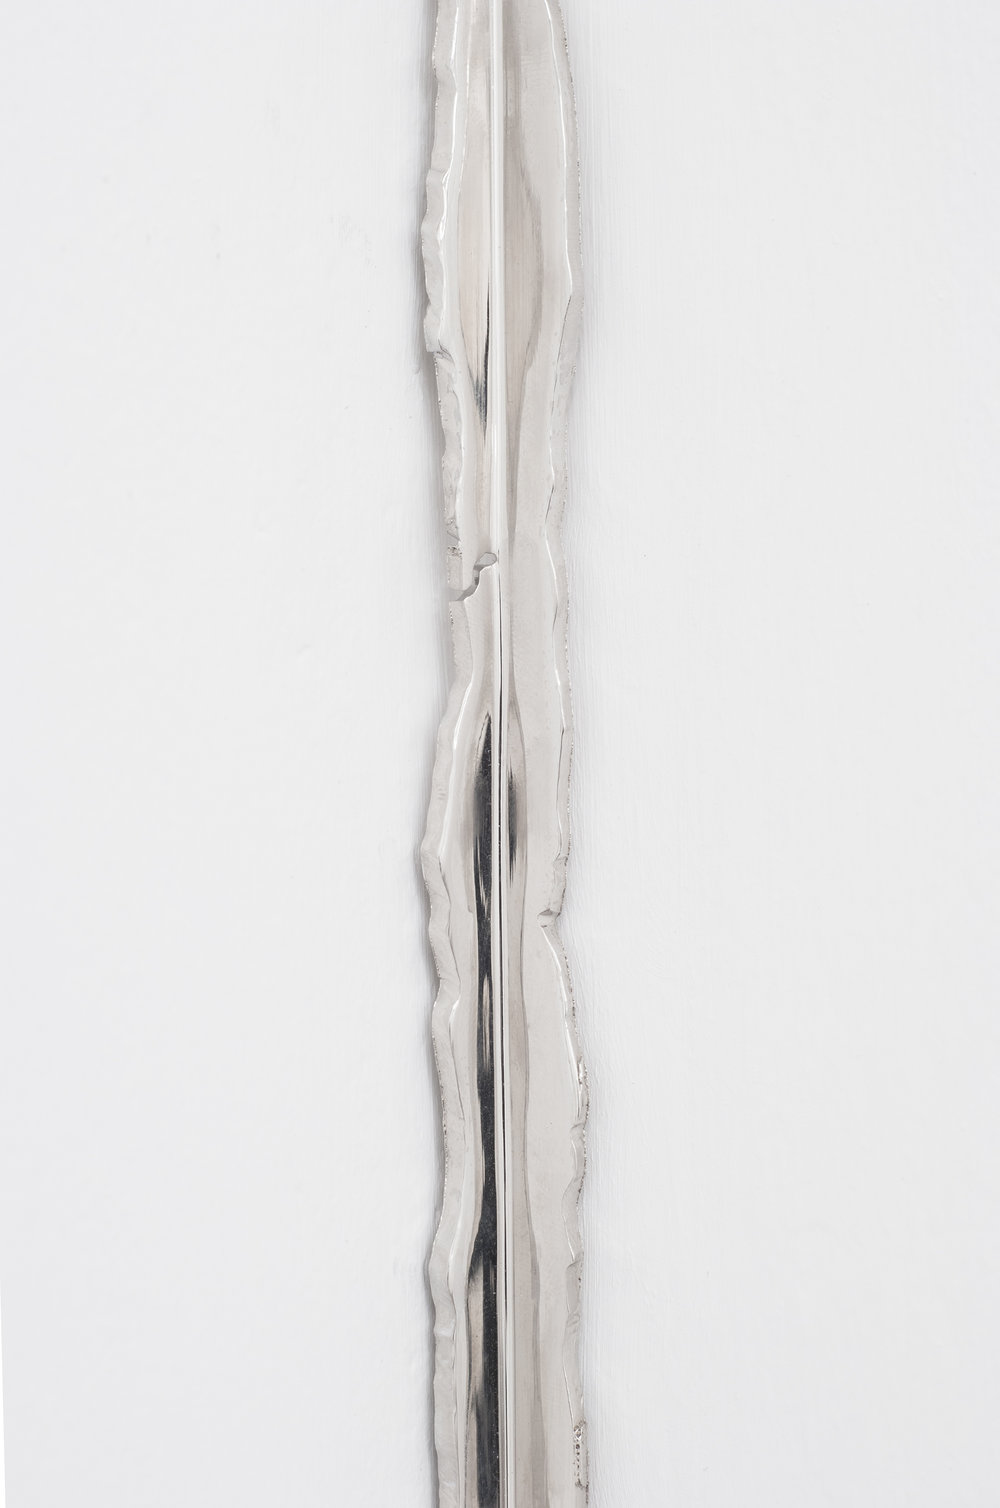 Corner (Detail), Nickel plated mirror polished steel, 110 X 3 inches, 2013